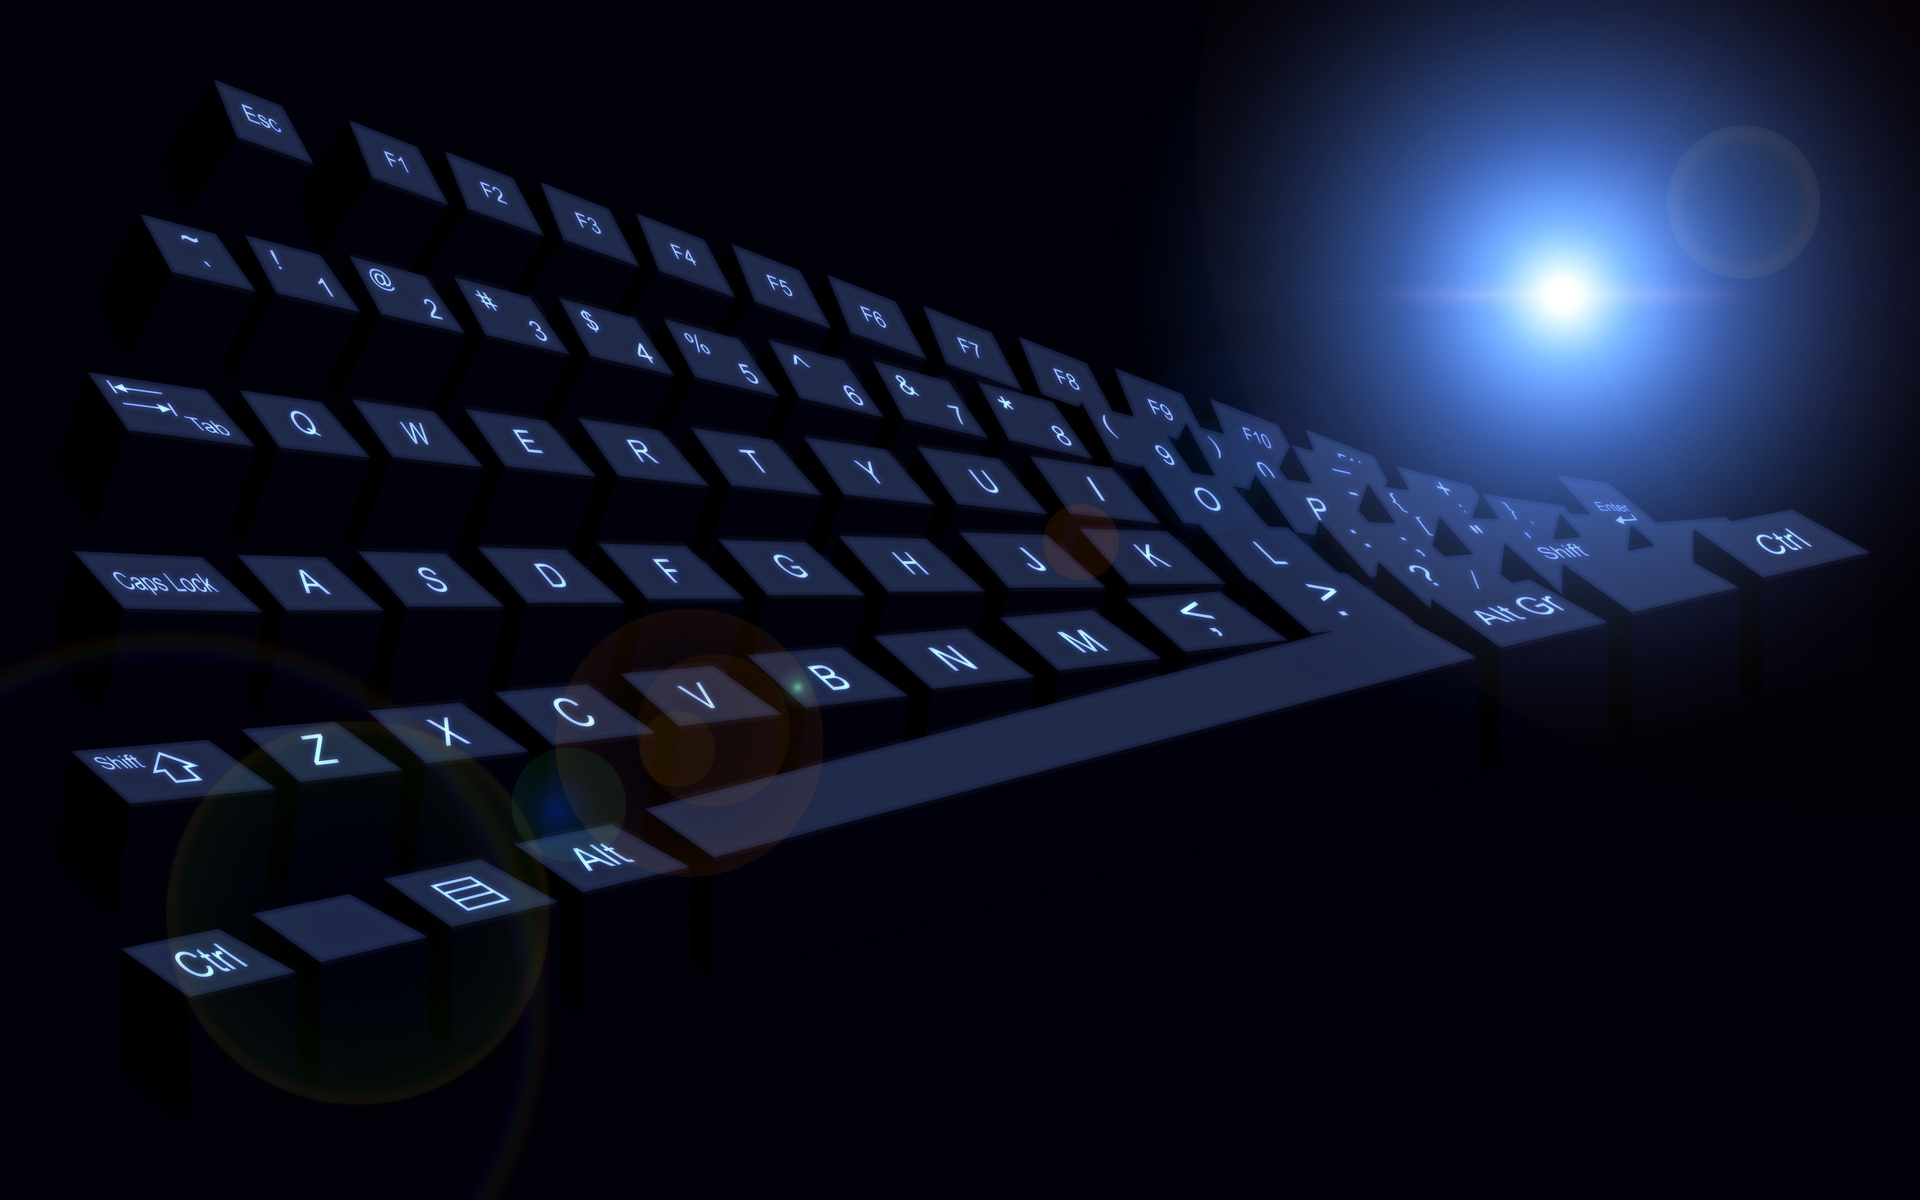 Keyboard Full HD Wallpaper And Background Image